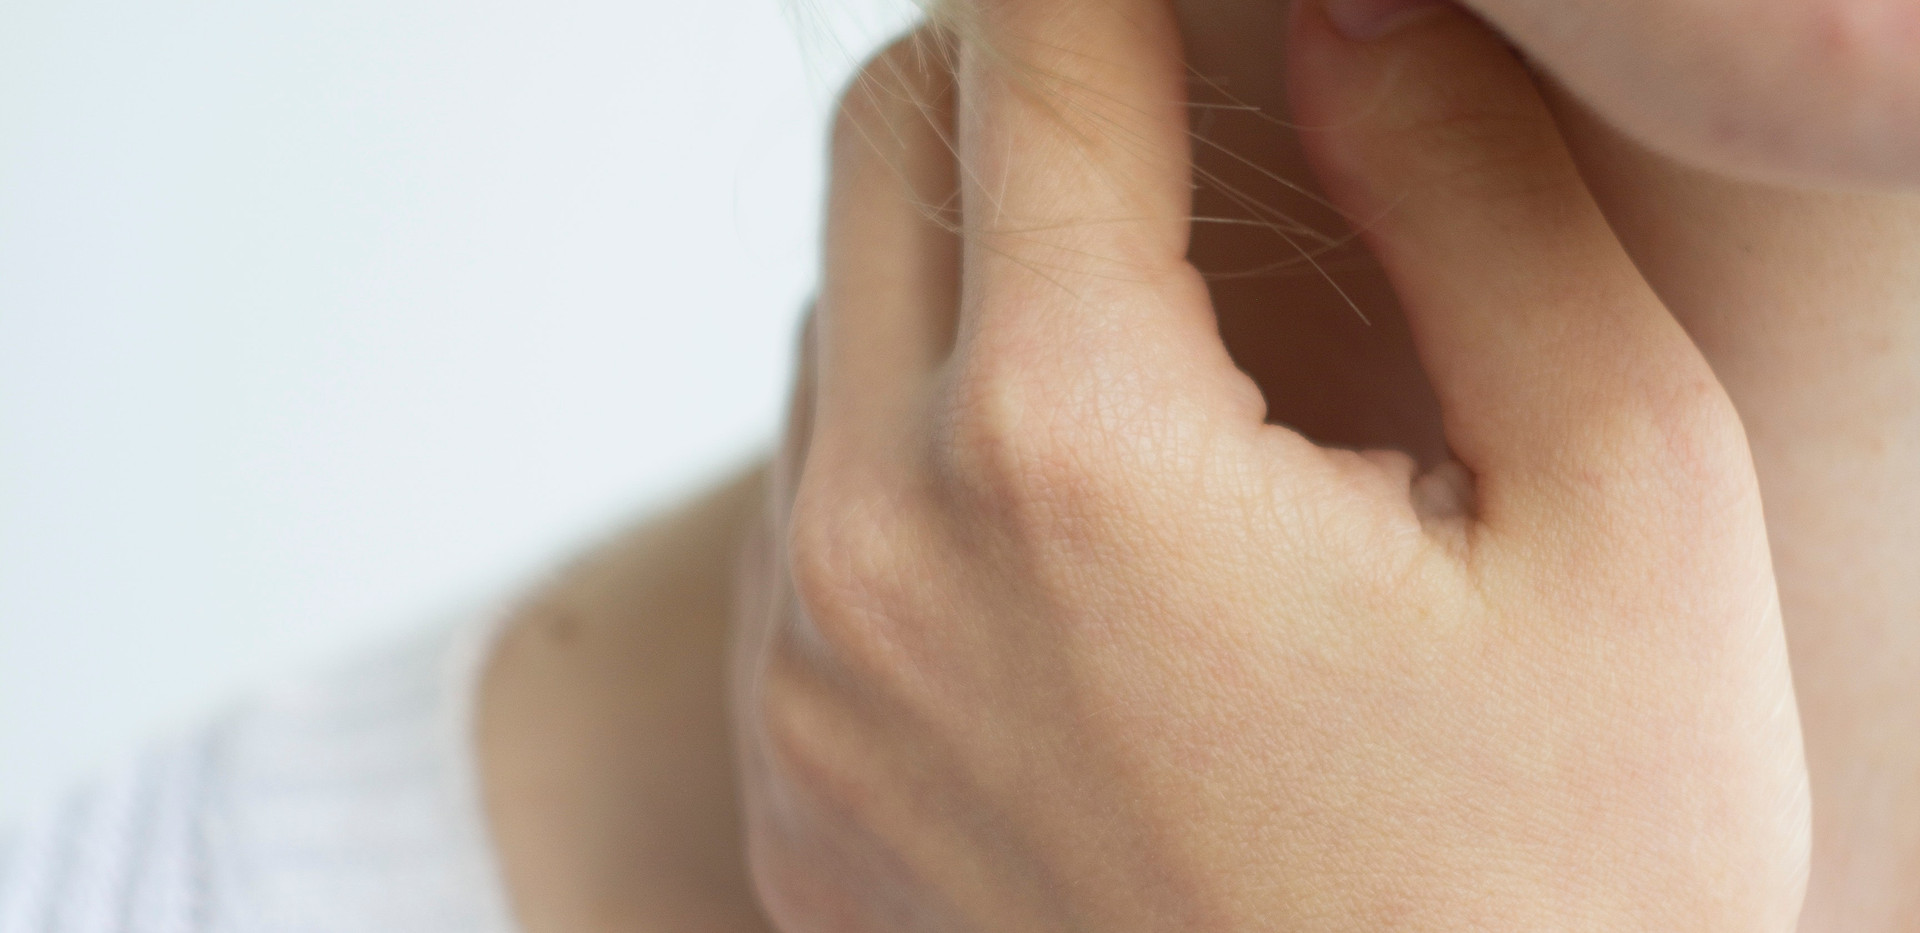 photo-of-woman-touching-her-neck-2734173